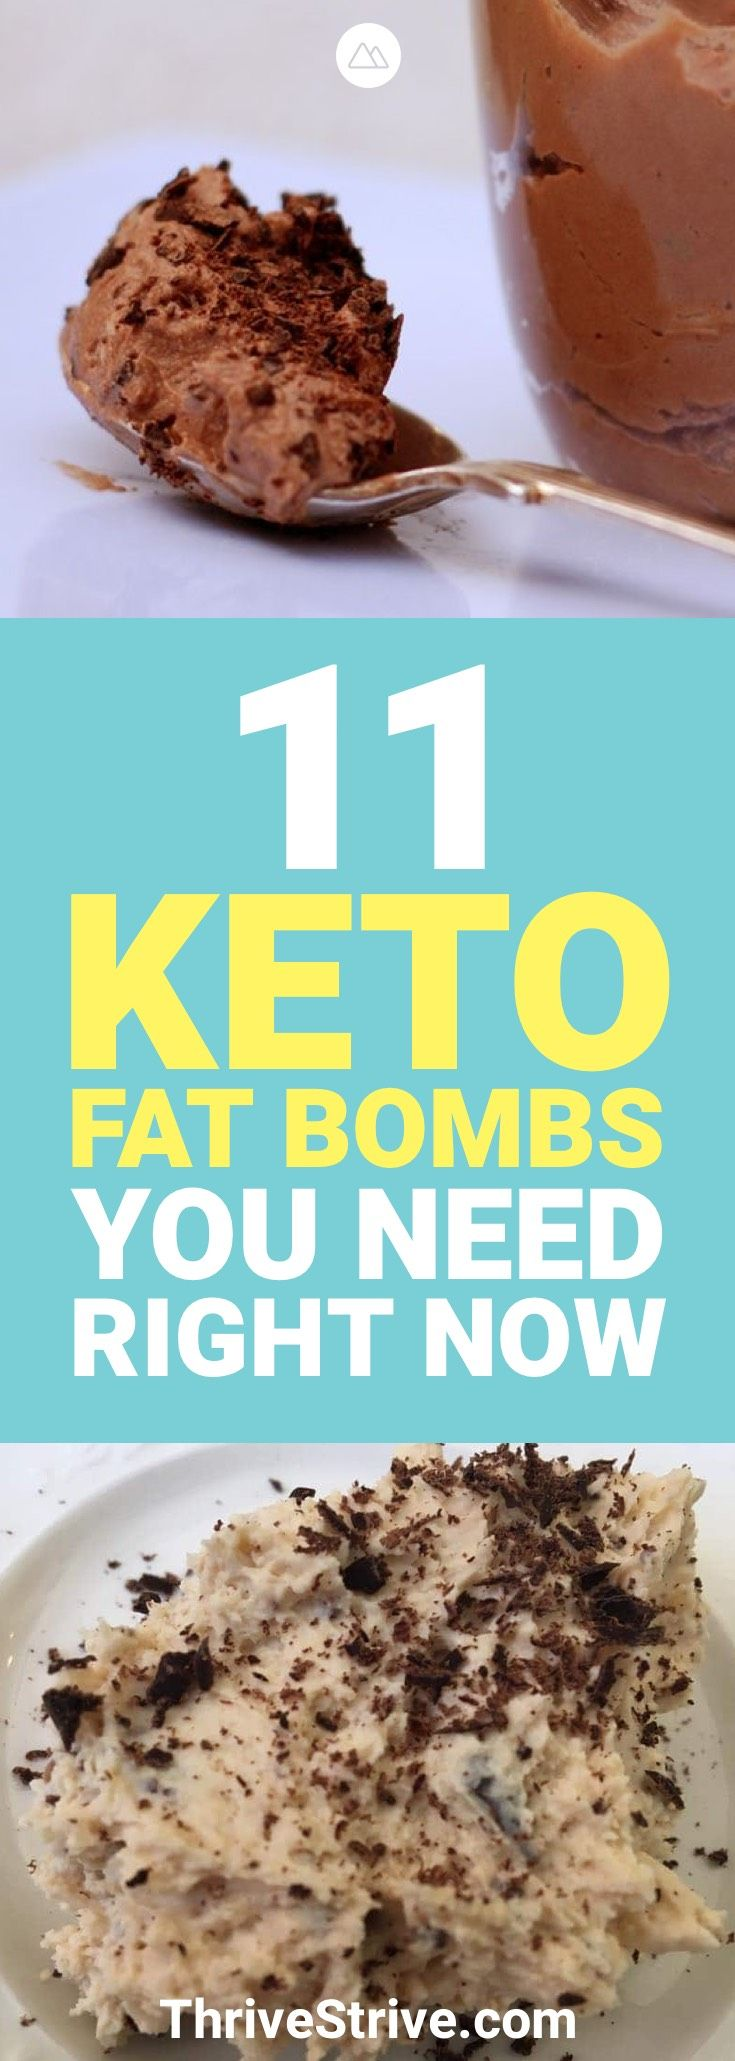 When you're on a ketogenic diet, you need to eat a lot of fats to lose fat. These 11 keto fat bombs are going to give you the fats you need to help you lose the fats you don't want.